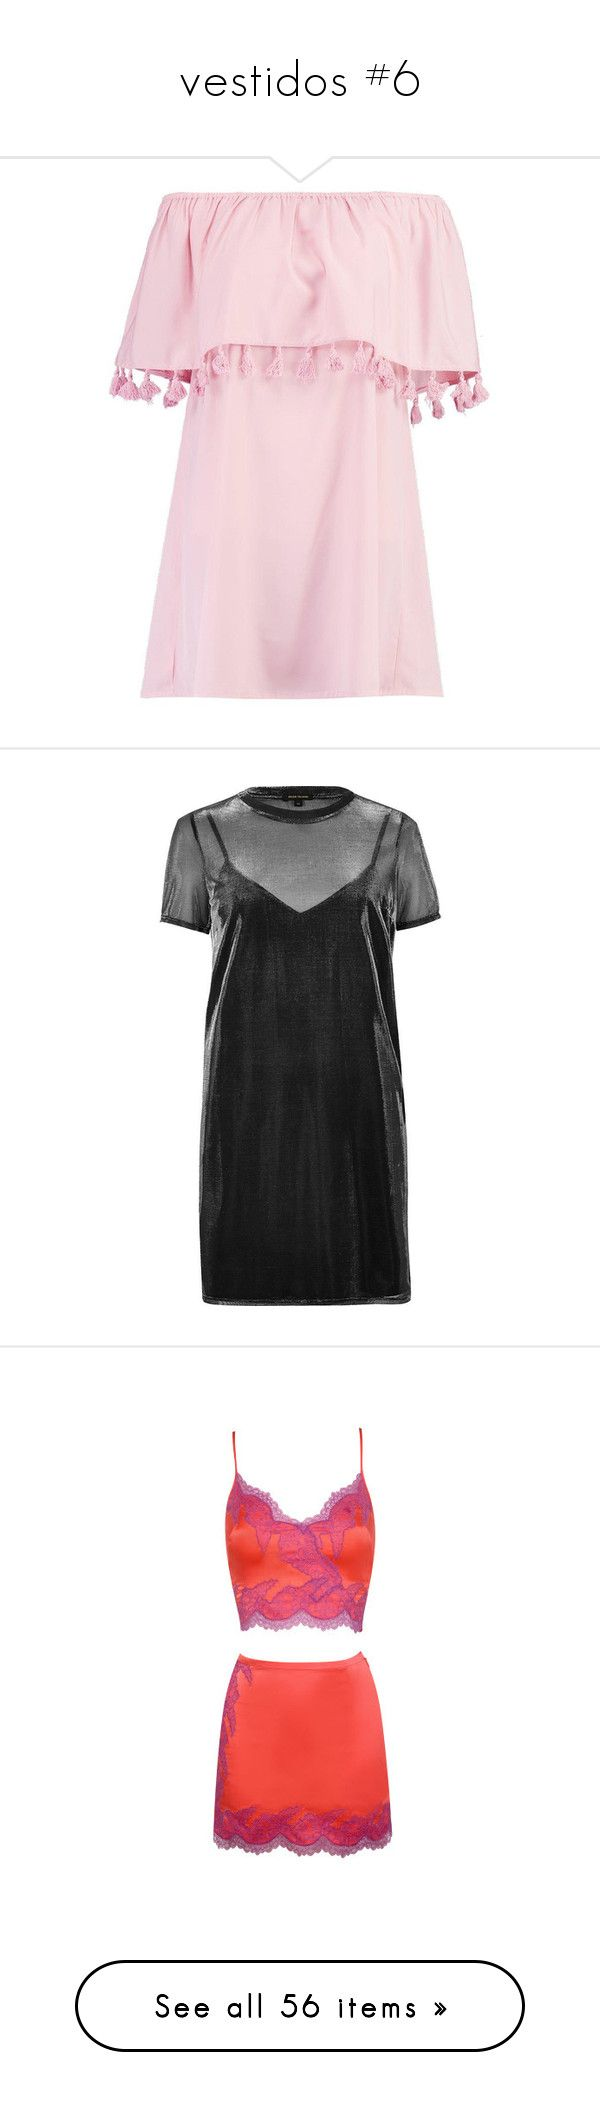 """""""vestidos #6"""" by madubs ❤ liked on Polyvore featuring dresses, vestido, pink bodycon dress, off shoulder maxi dress, off the shoulder bodycon dress, shift dresses, bodycon mini dress, vestidos, black and grey t shirt dress"""